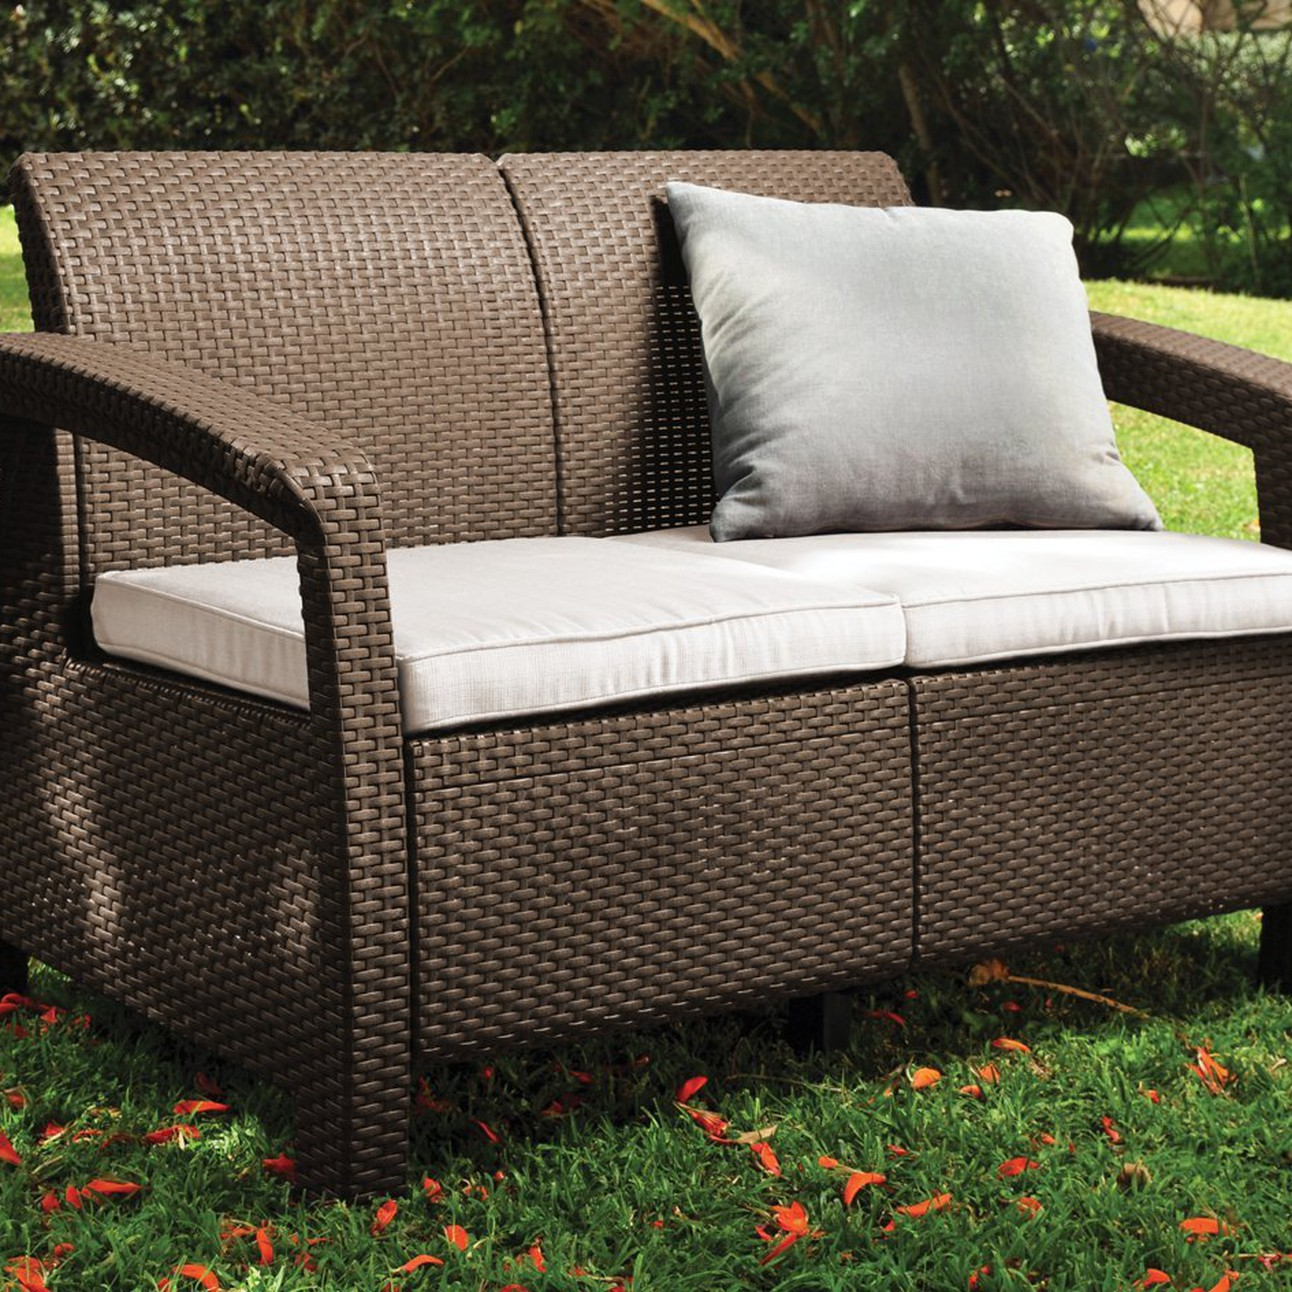 Keter Rattan Style 3 Drawer Cart.Keter Corfu Love Seat All Weather Outdoor Patio Garden Furniture W